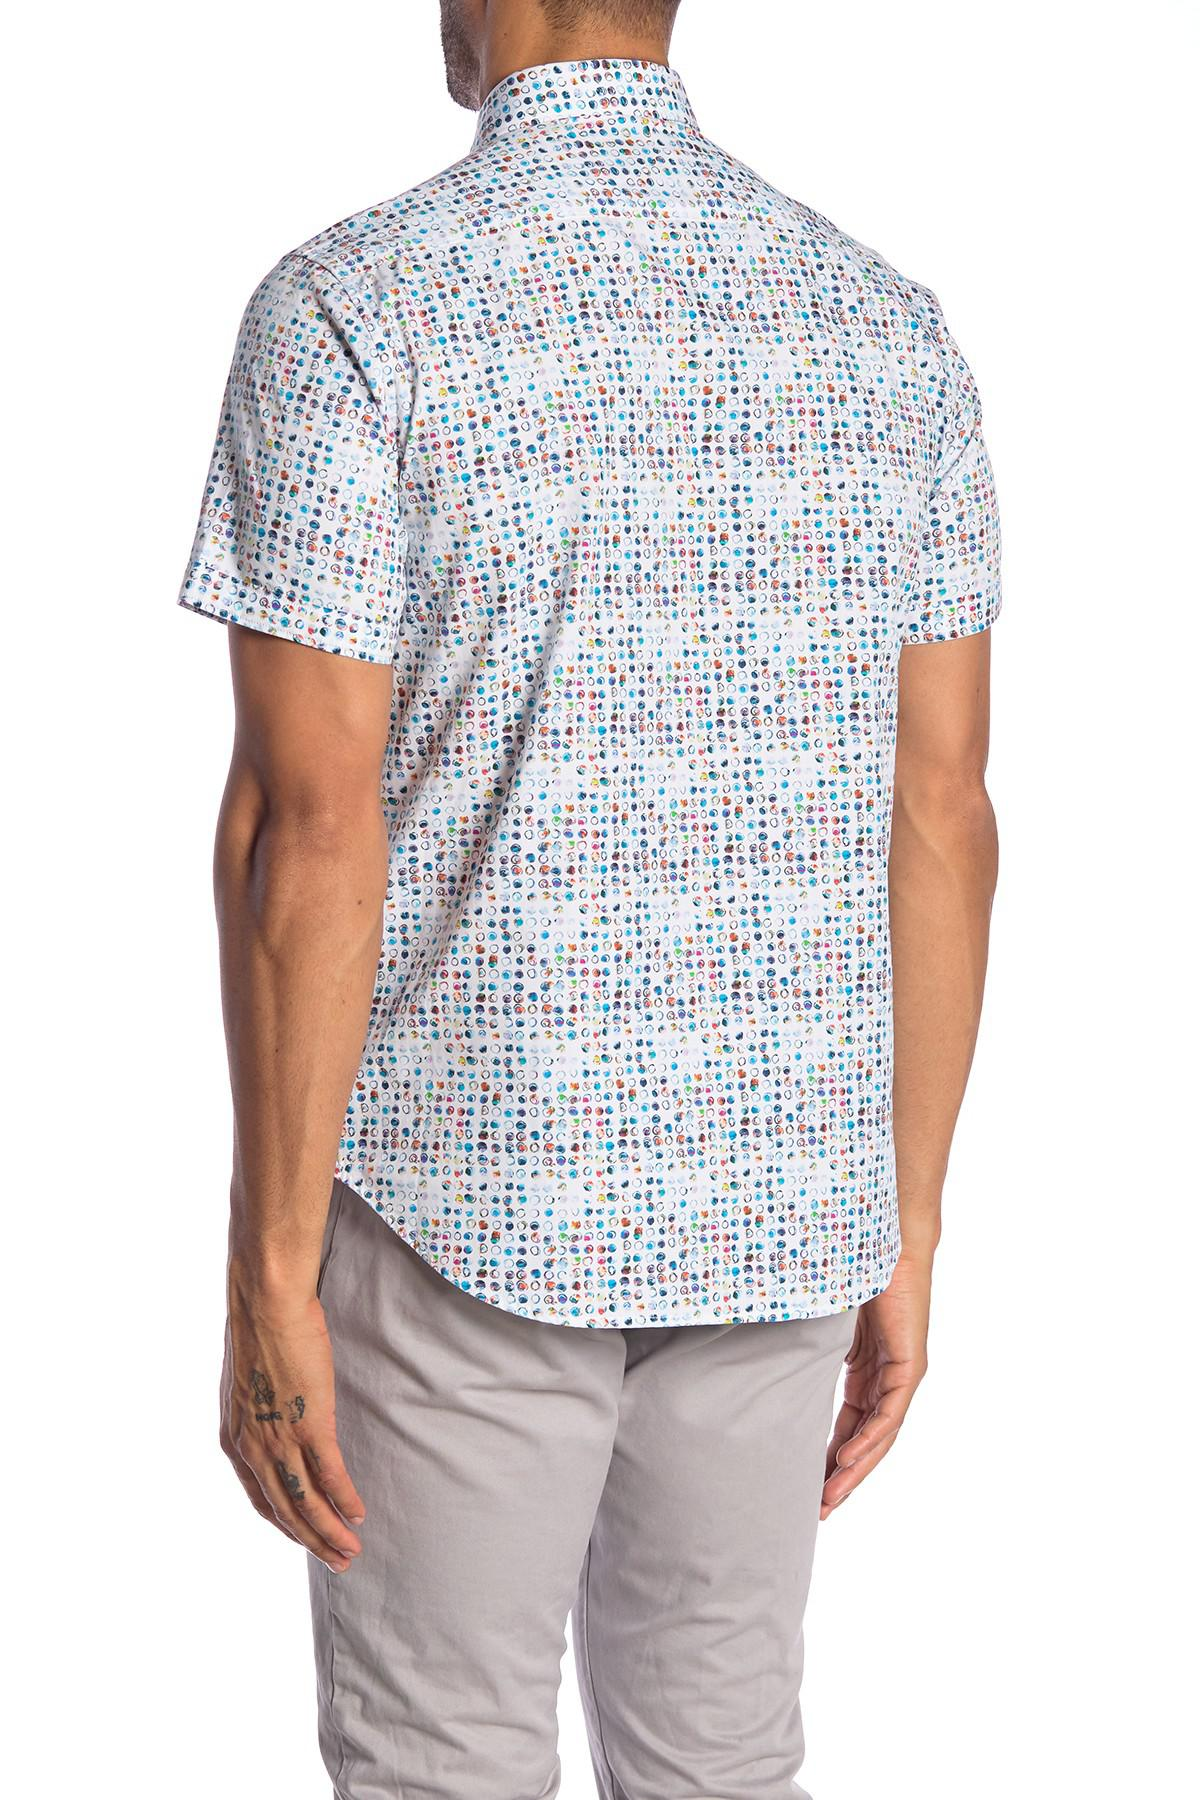 30d71654 Robert Graham - Blue Full Circle Patterned Short Sleeve Classic Fit Shirt  for Men - Lyst. View fullscreen